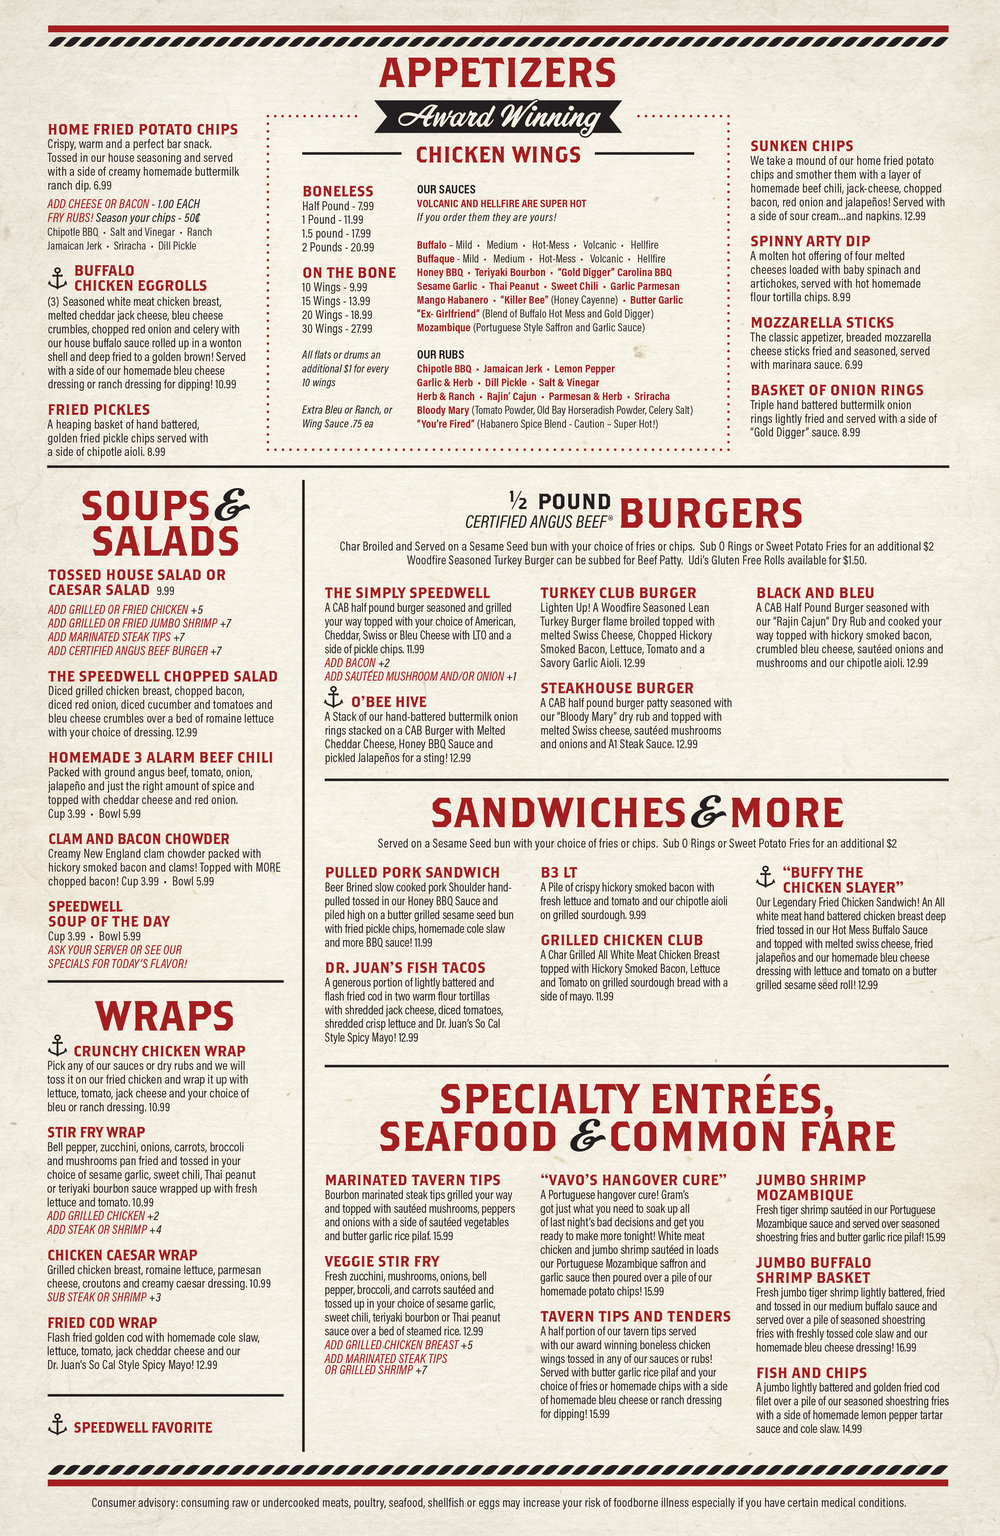 Speedwell-Tavern_Menu.jpg